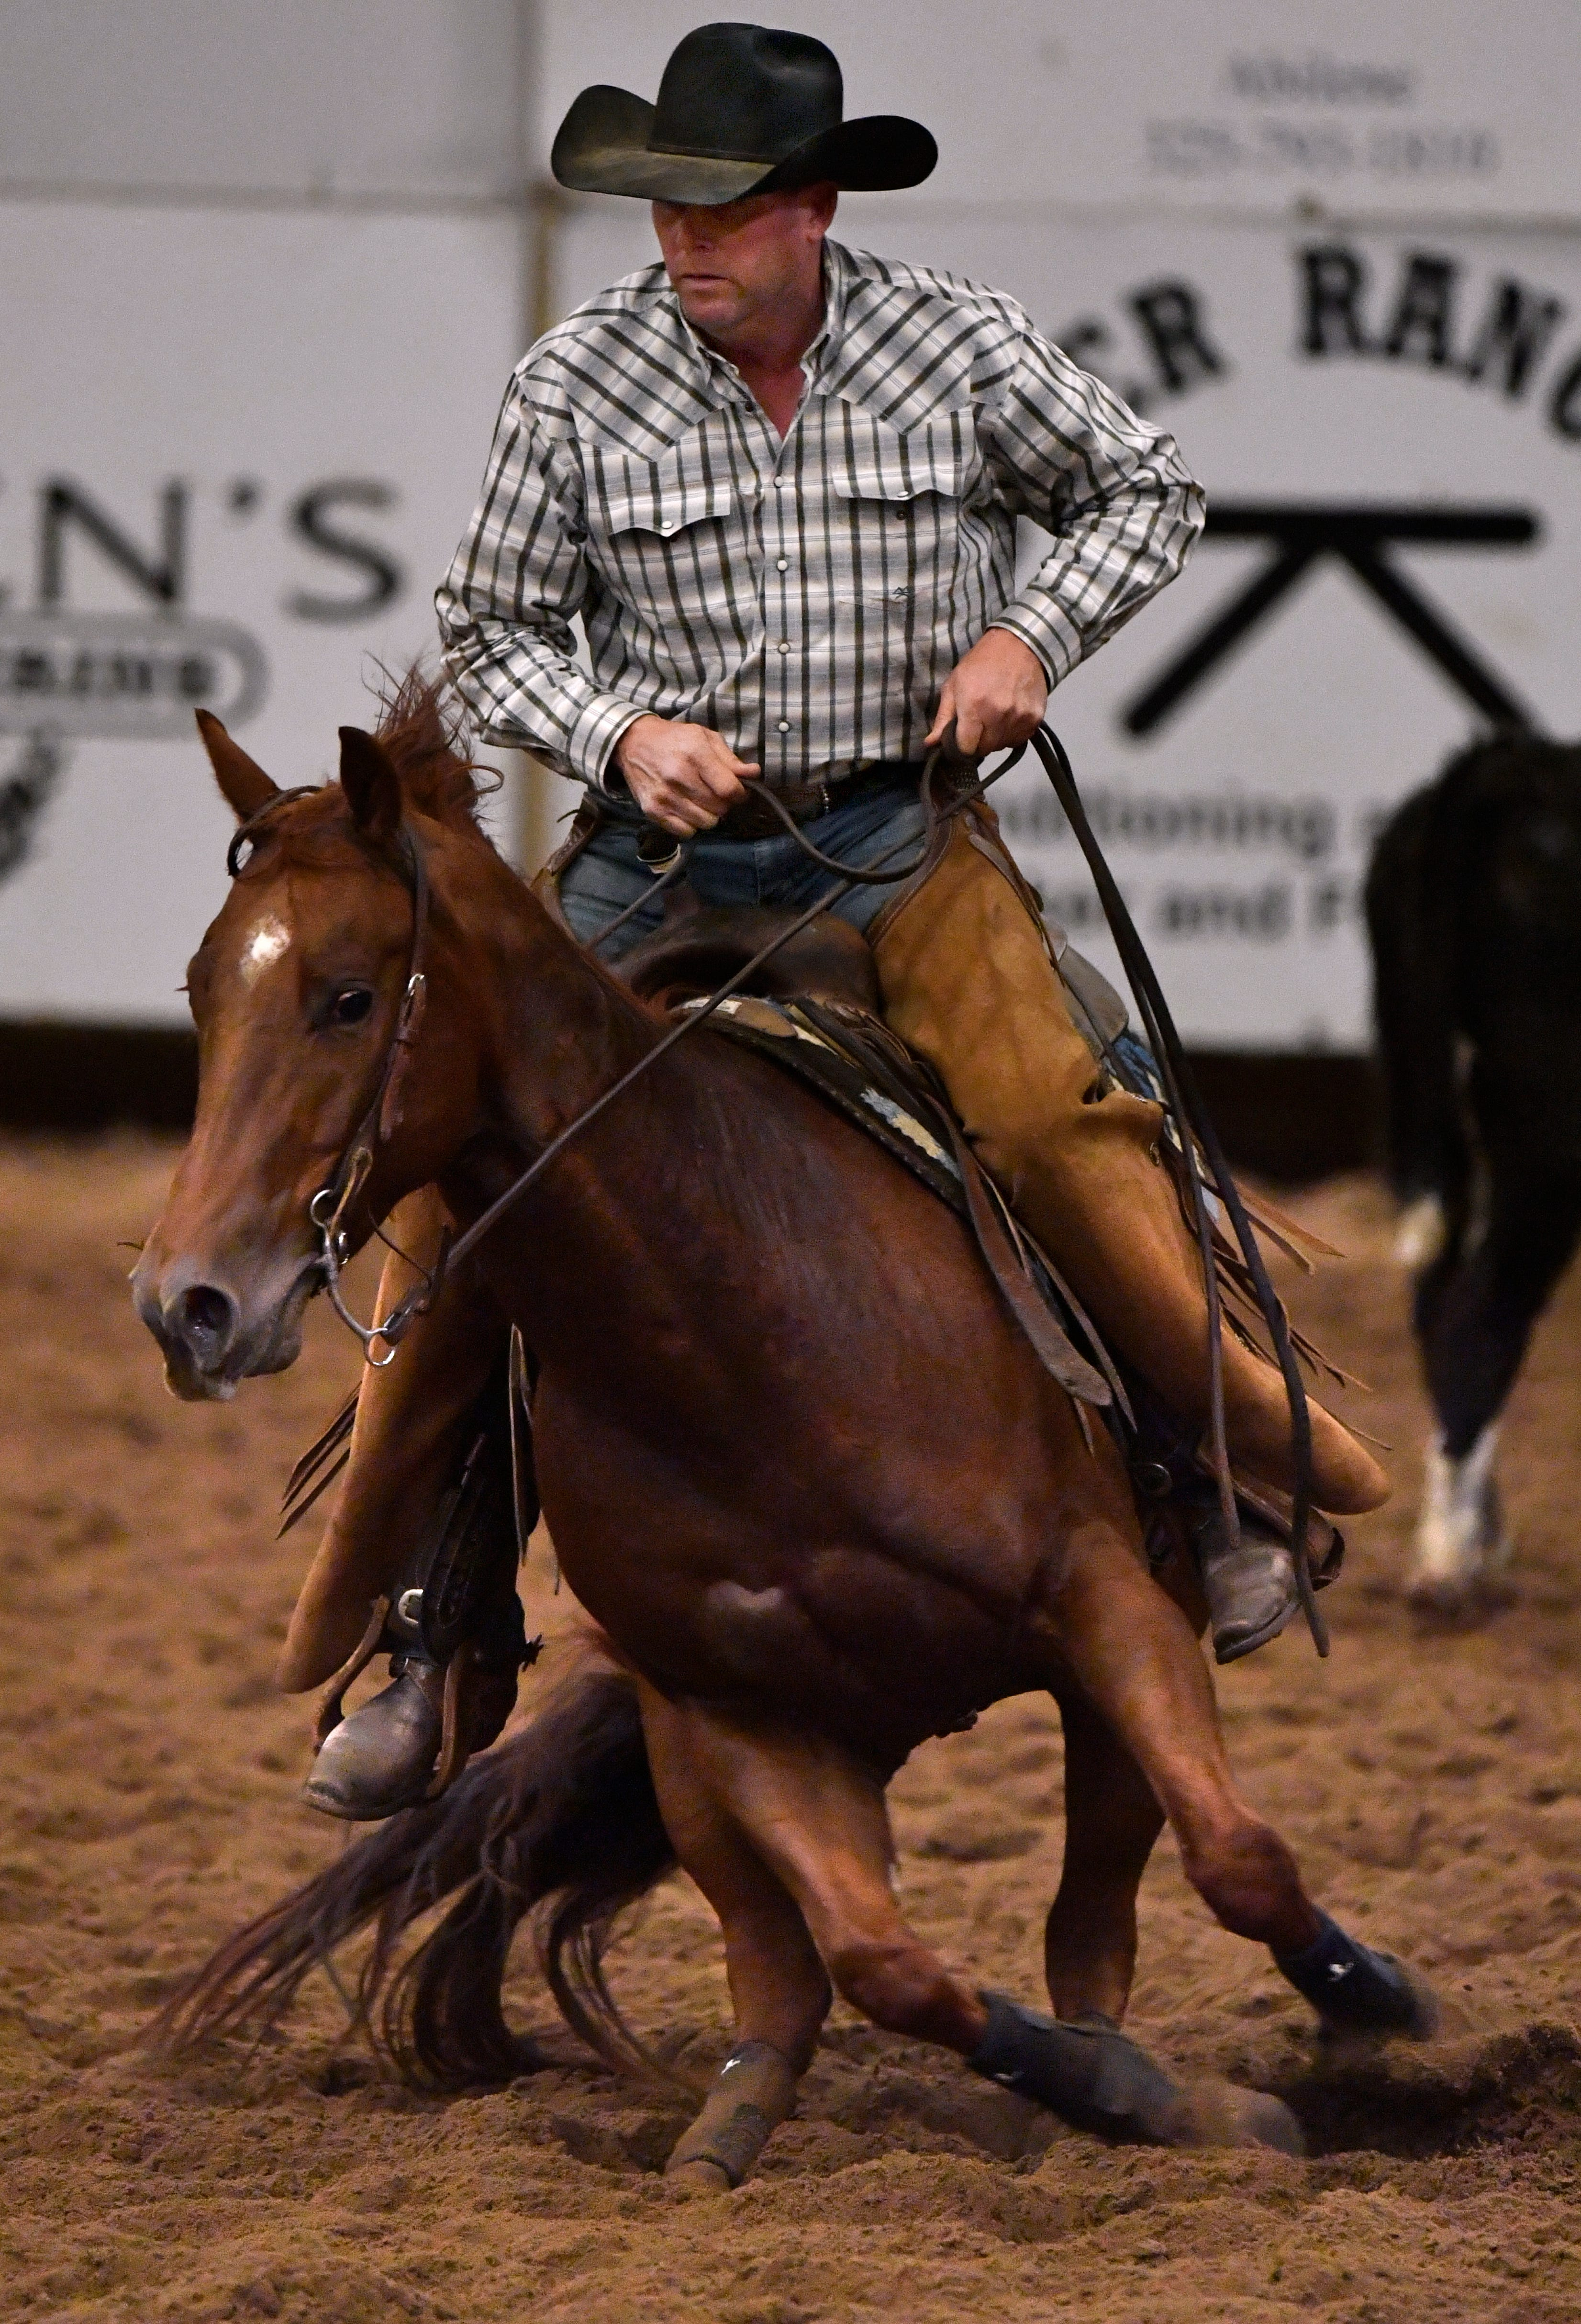 """Mackie Hursh of Colorado City nudges his mount to the right as horse and rider bob and weave to the left and right Friday at the Abilene Winter Circuit Cutting. A skill used by ranch hands around the world, """"cutting"""" is the practice of separating one calf from the herd and then keeping it from returning."""